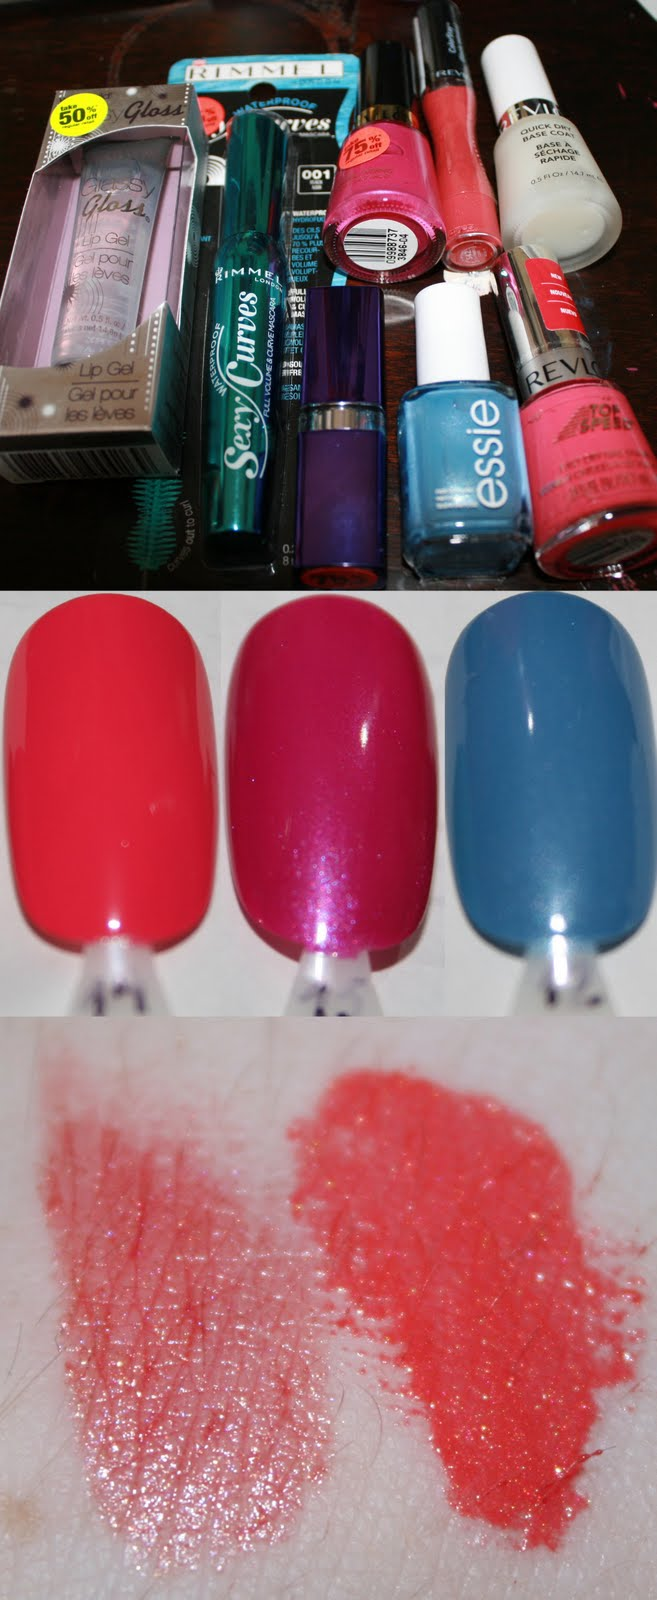 vibrancy on a brush: CVS Haul and Review- 5.24.11